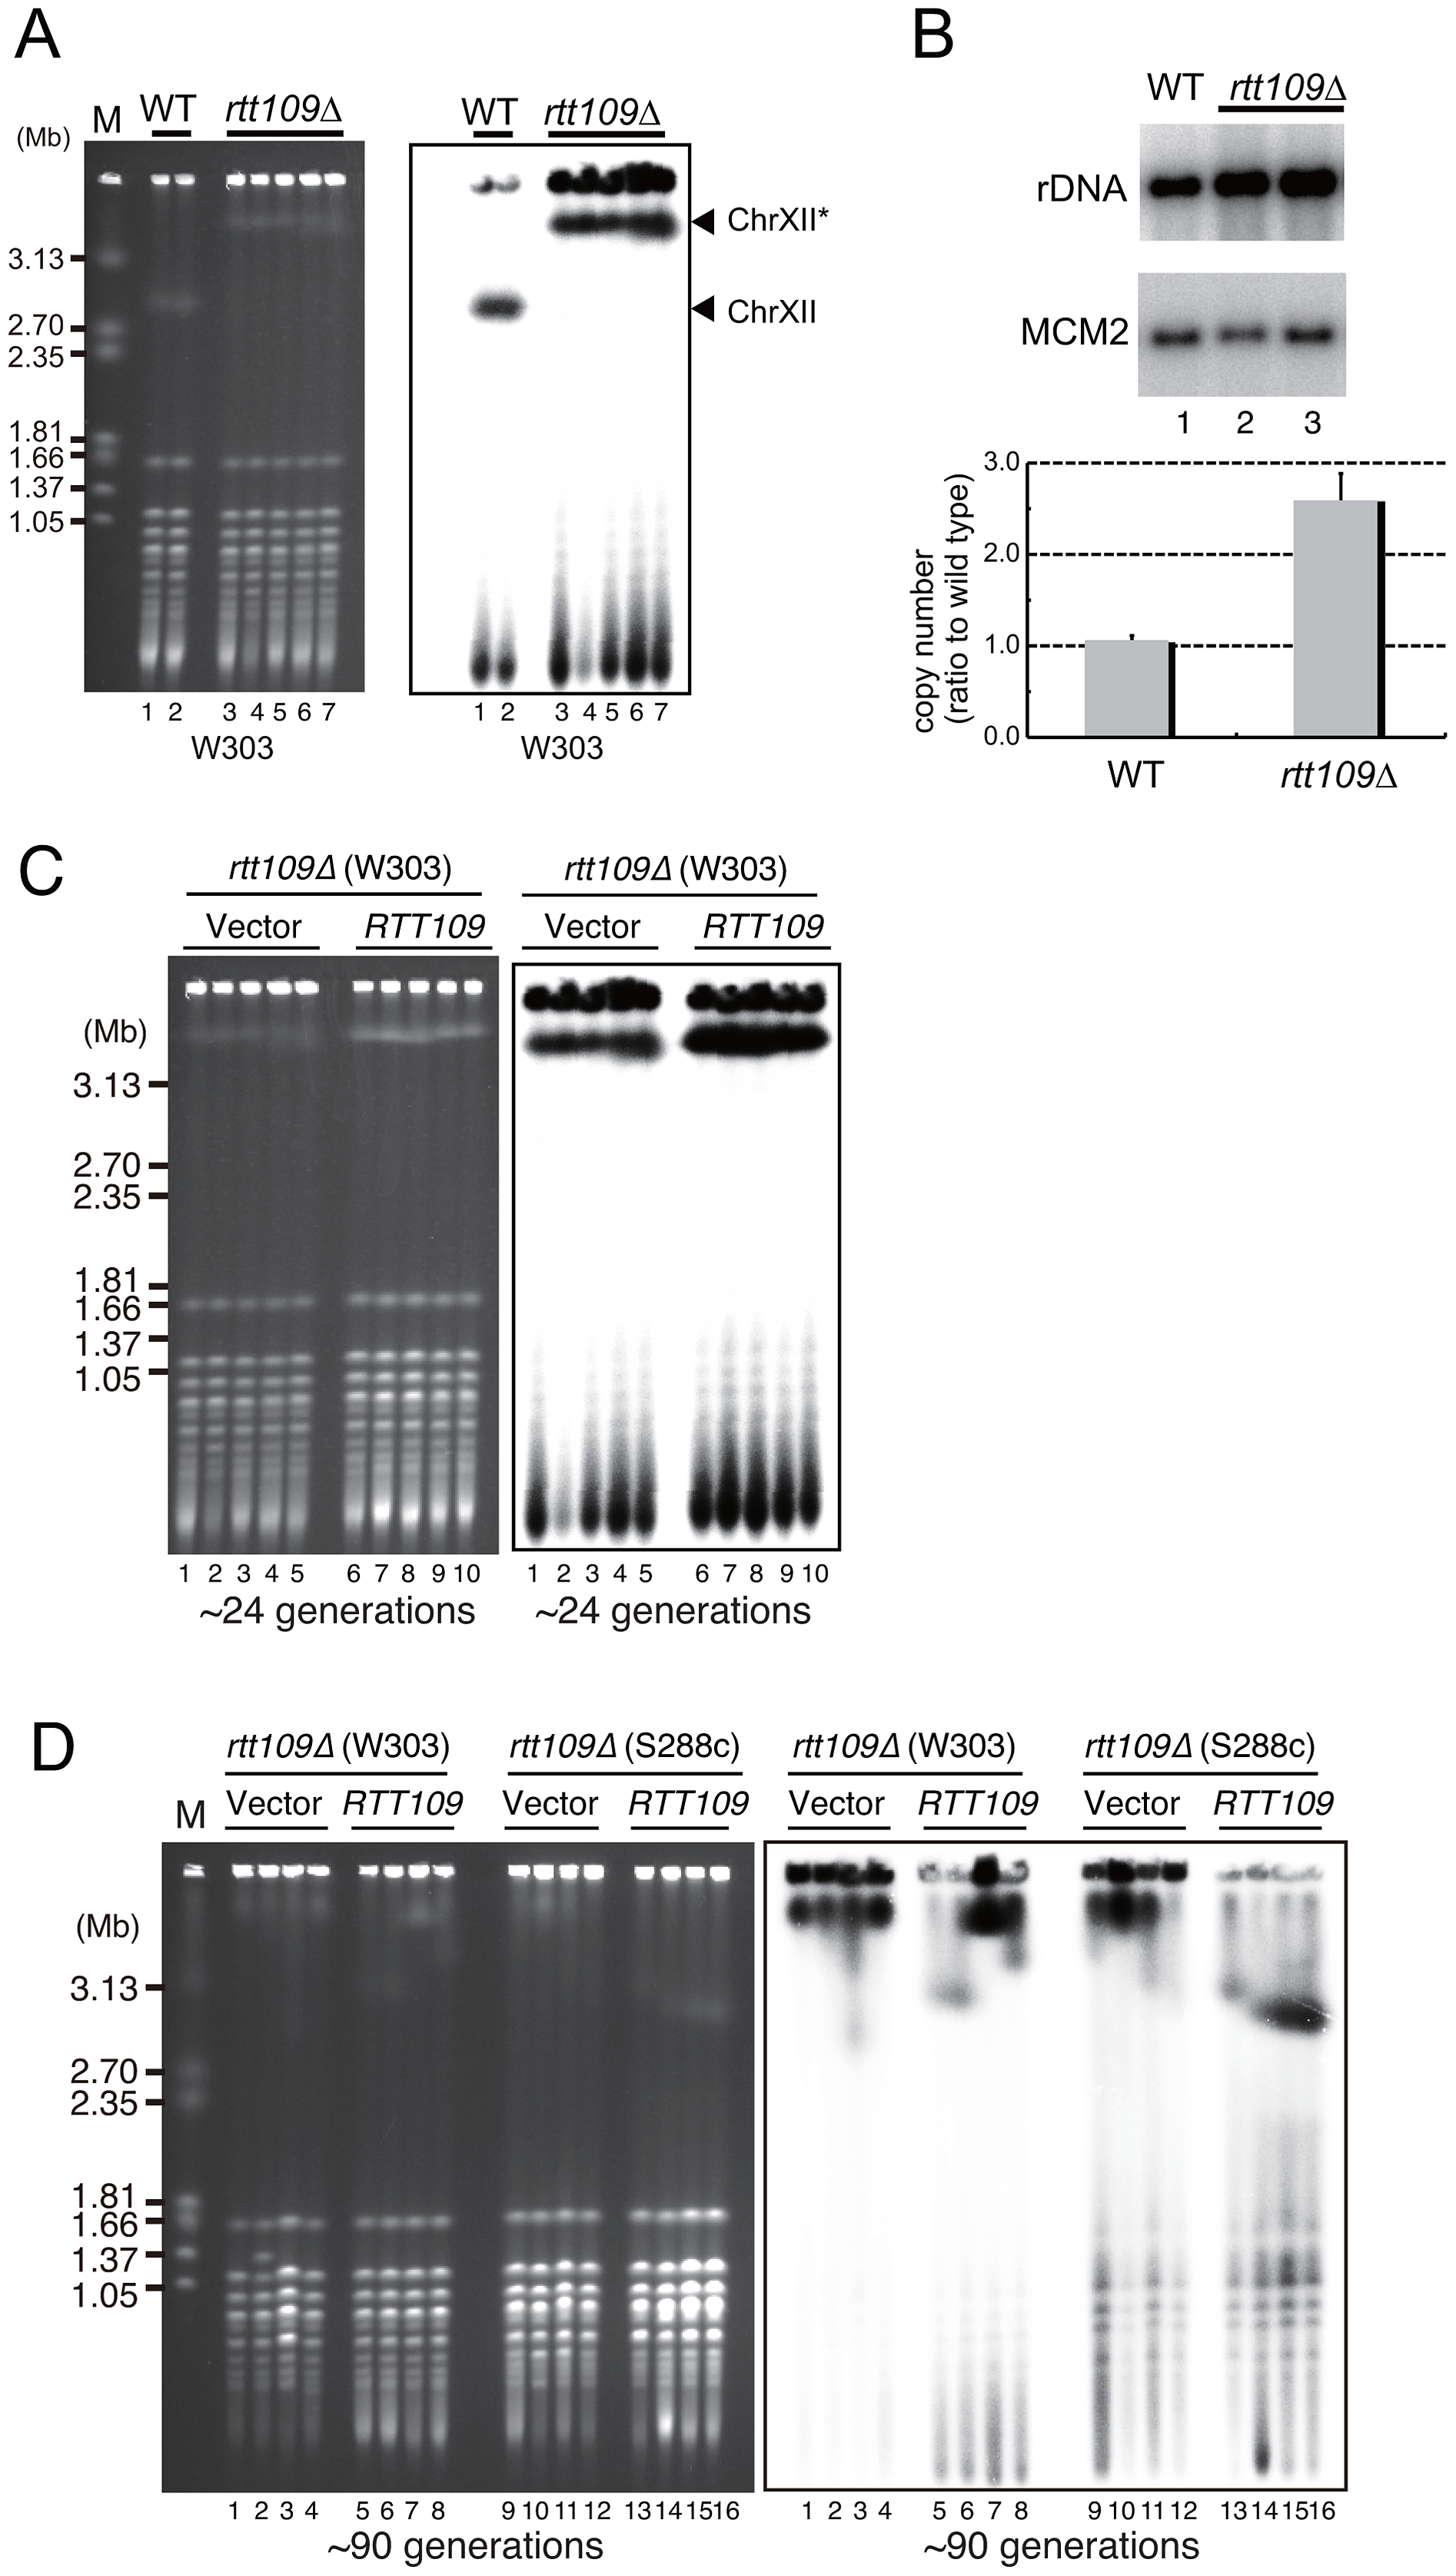 Hyper-amplification of rDNA is induced by deletion of <i>RTT109</i>.